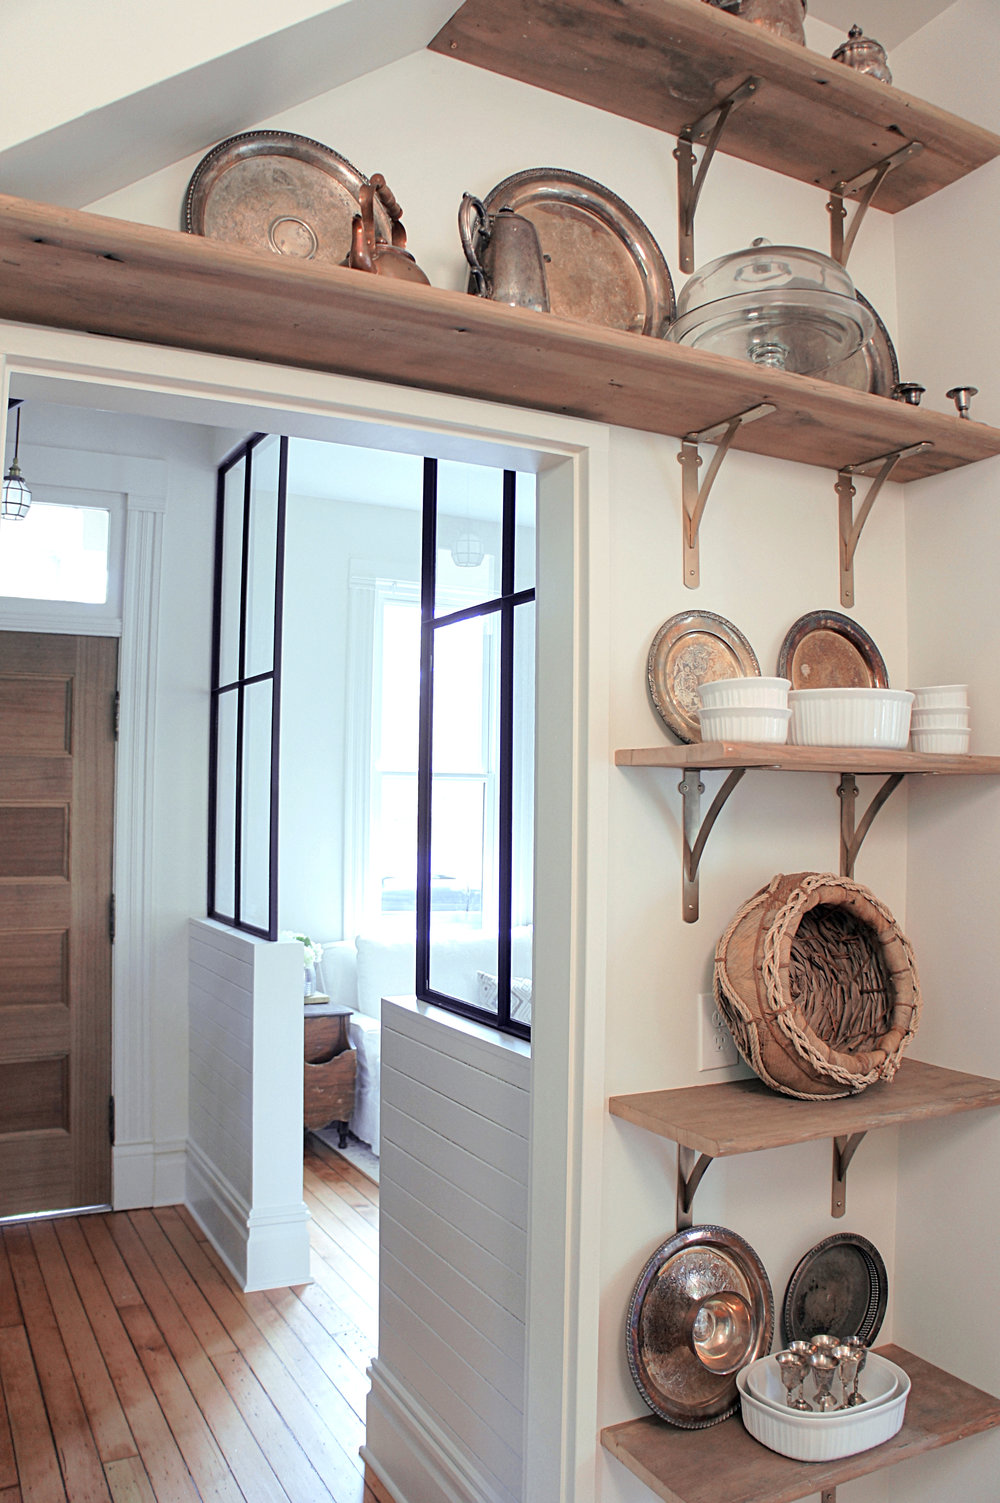 Kitchen Shelving by Kaemingk Design